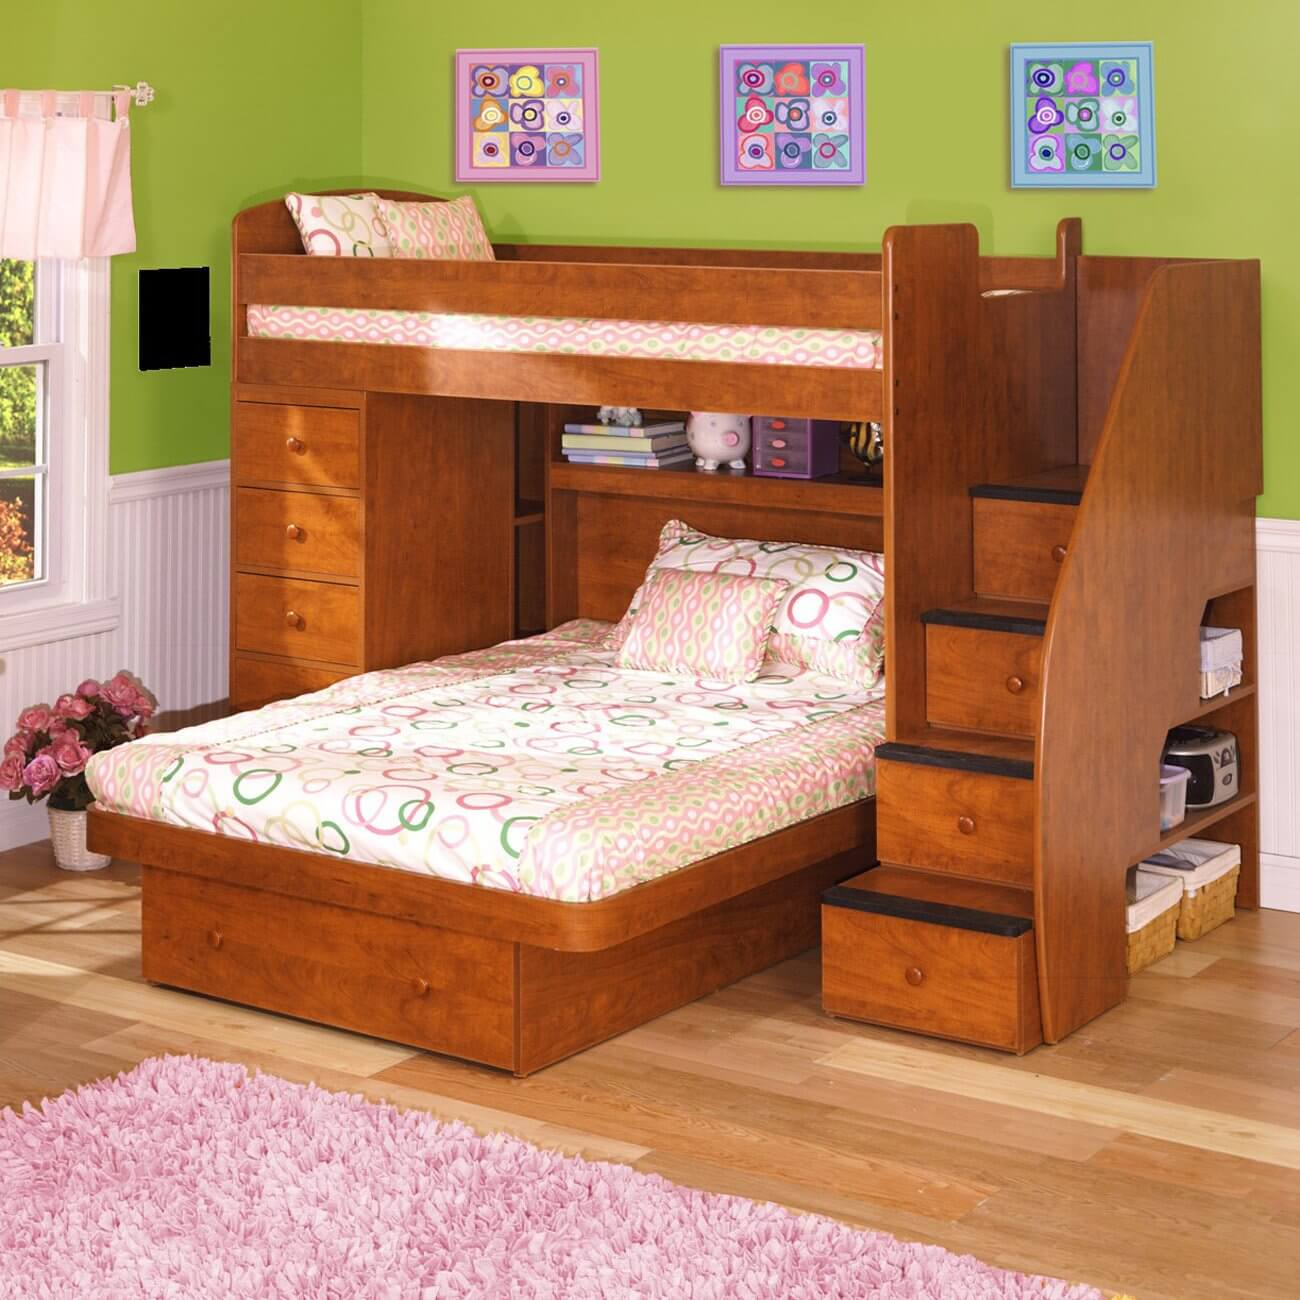 Bunk bed with stairs and desk plans - This Engineered Wood L Shaped Bunk Is A Twin Over Full Size Bed The